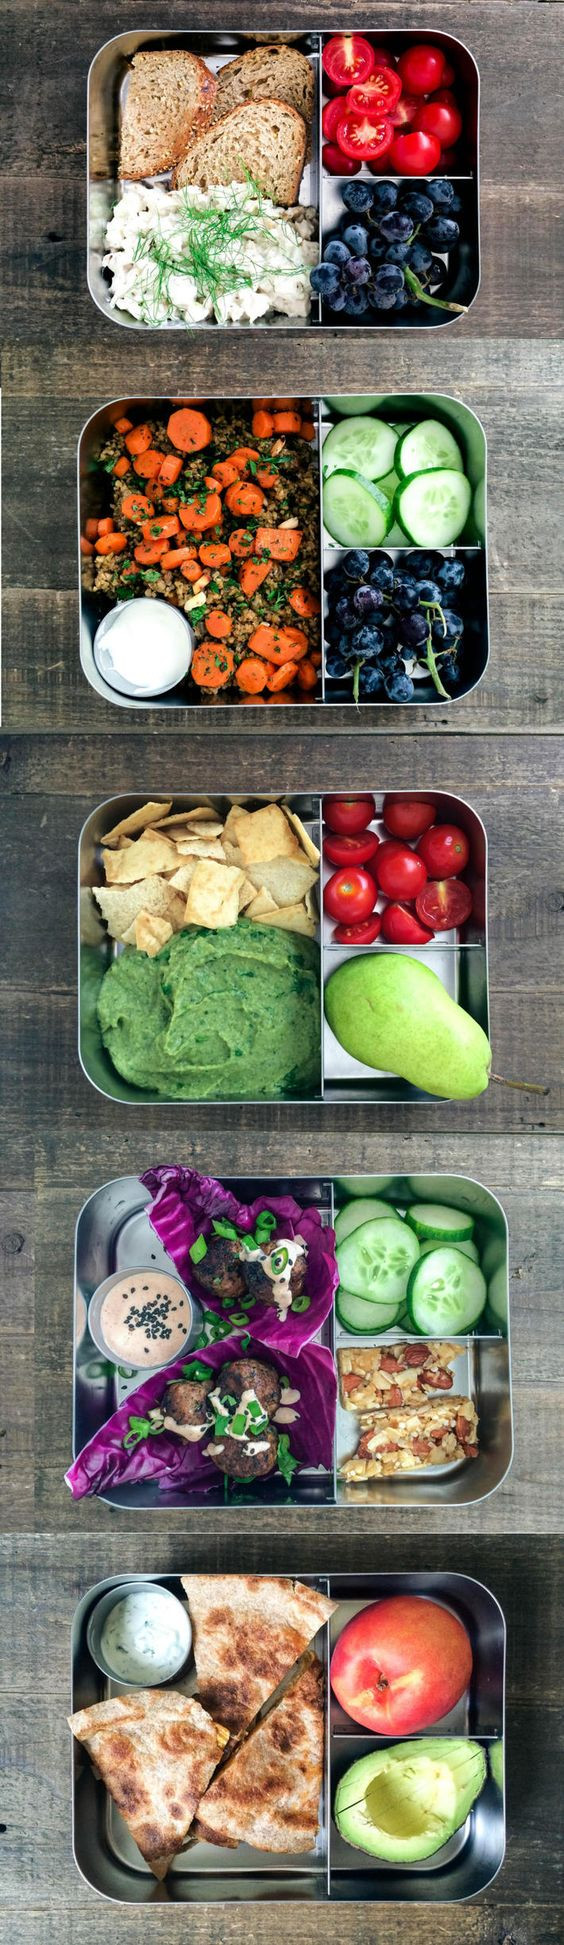 Think Inside The Box: Healthy Bento Boxes